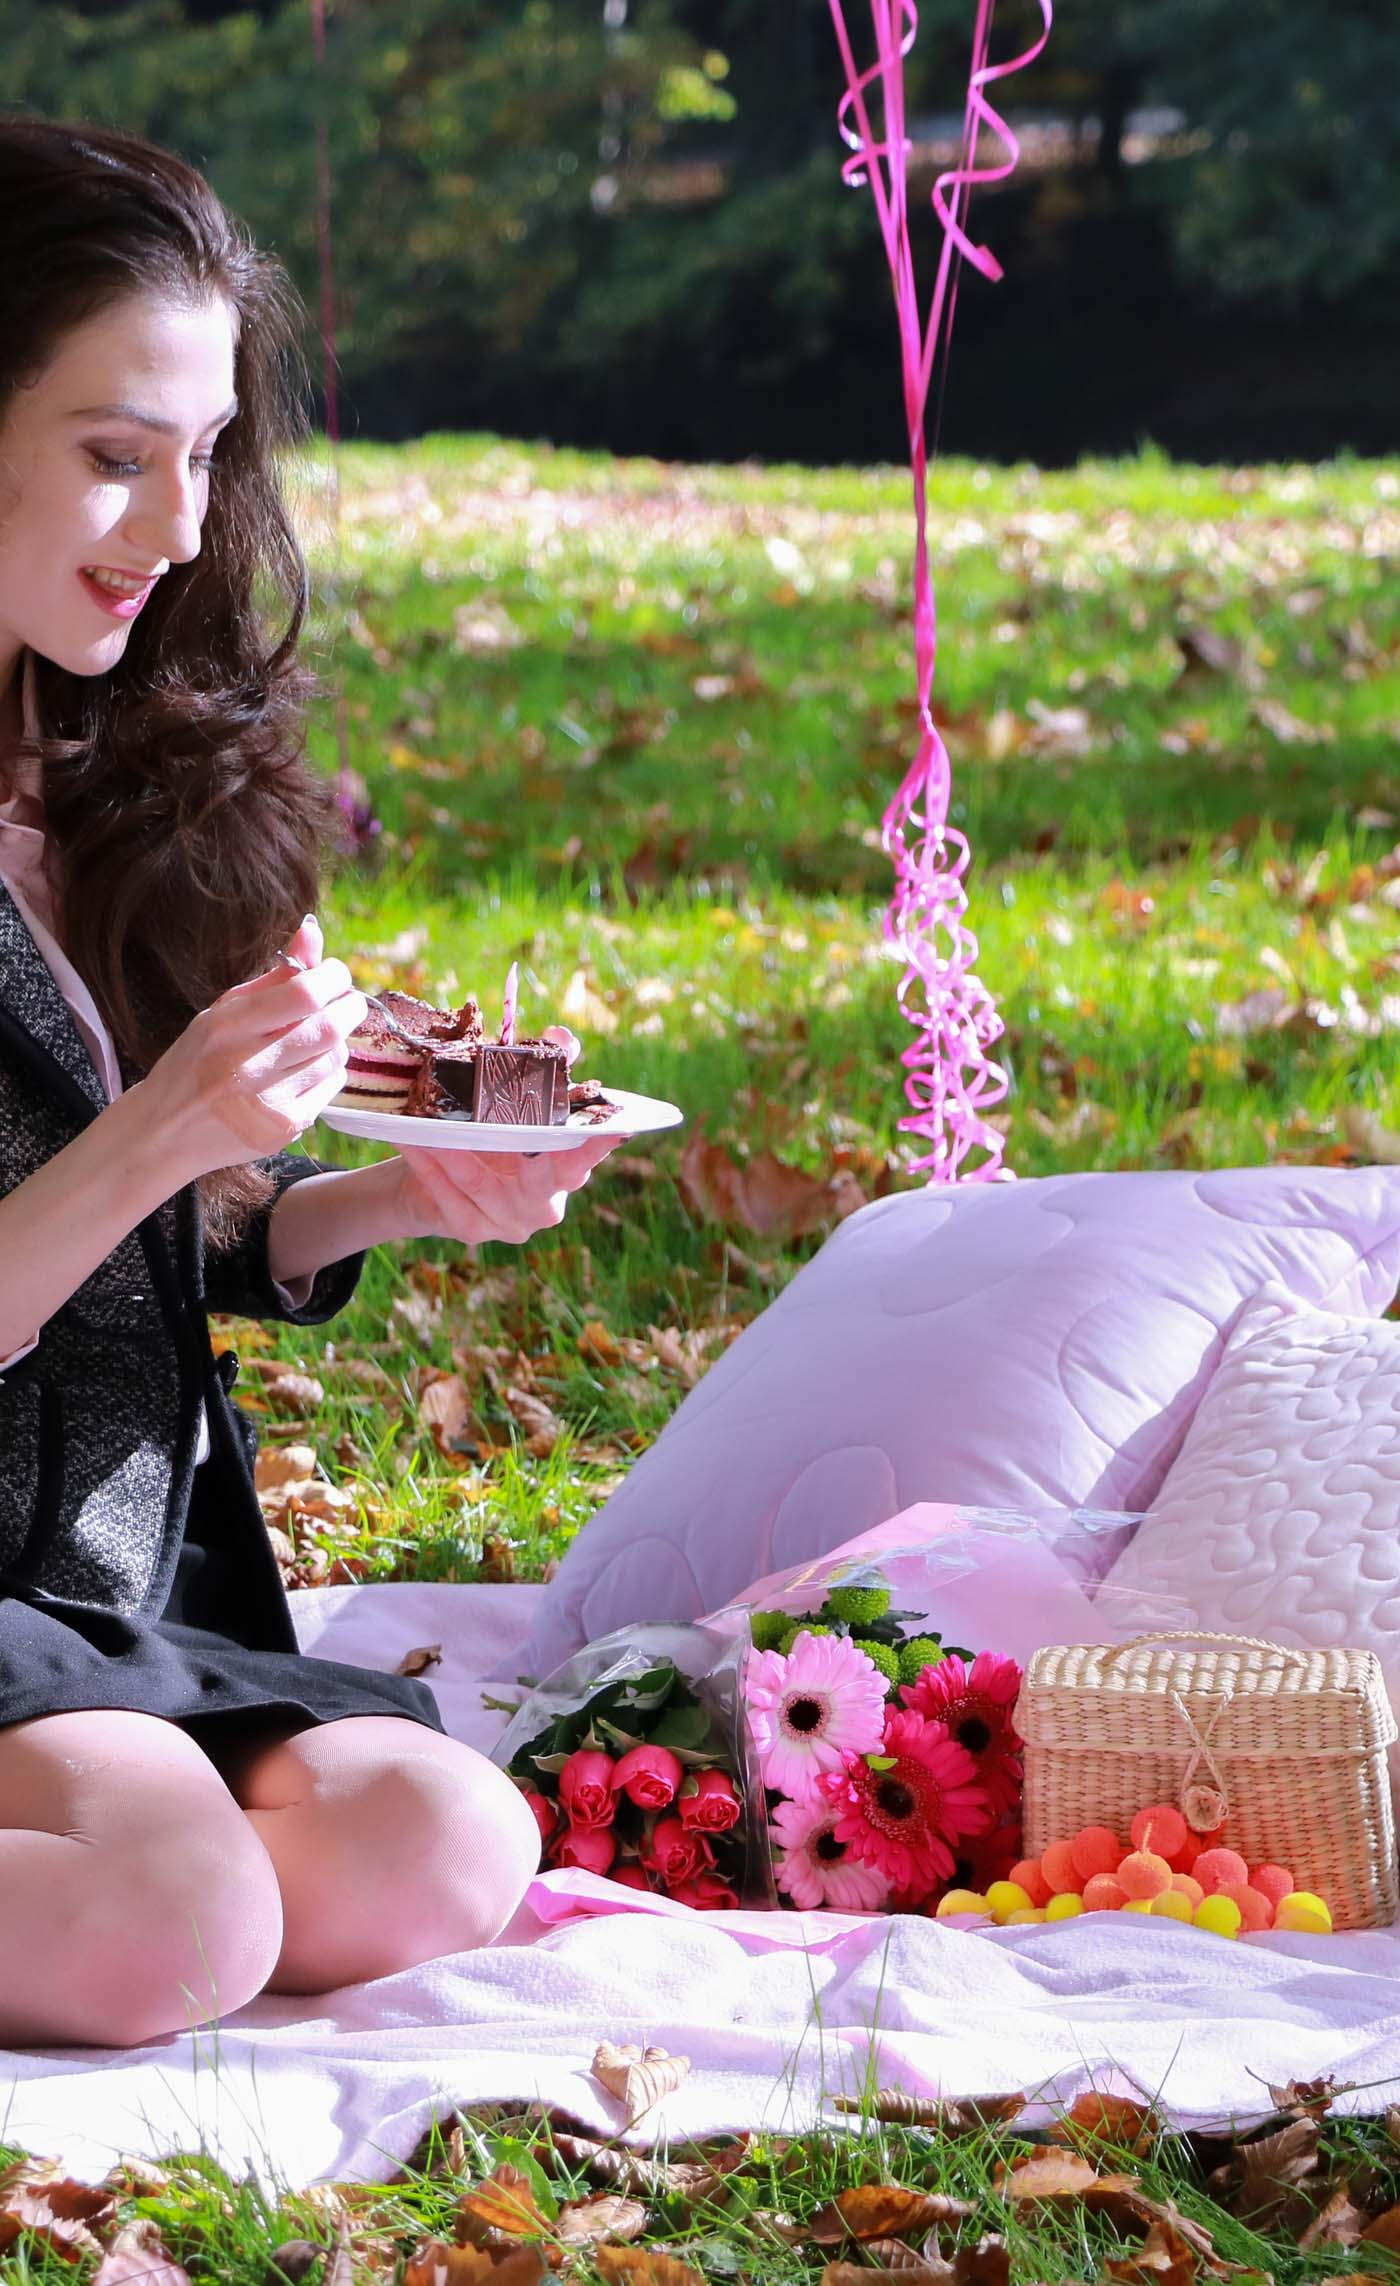 Fashion Blogger Veronika Lipar of Brunette from Wall Street eating a chocolate cake on her birthday picnic